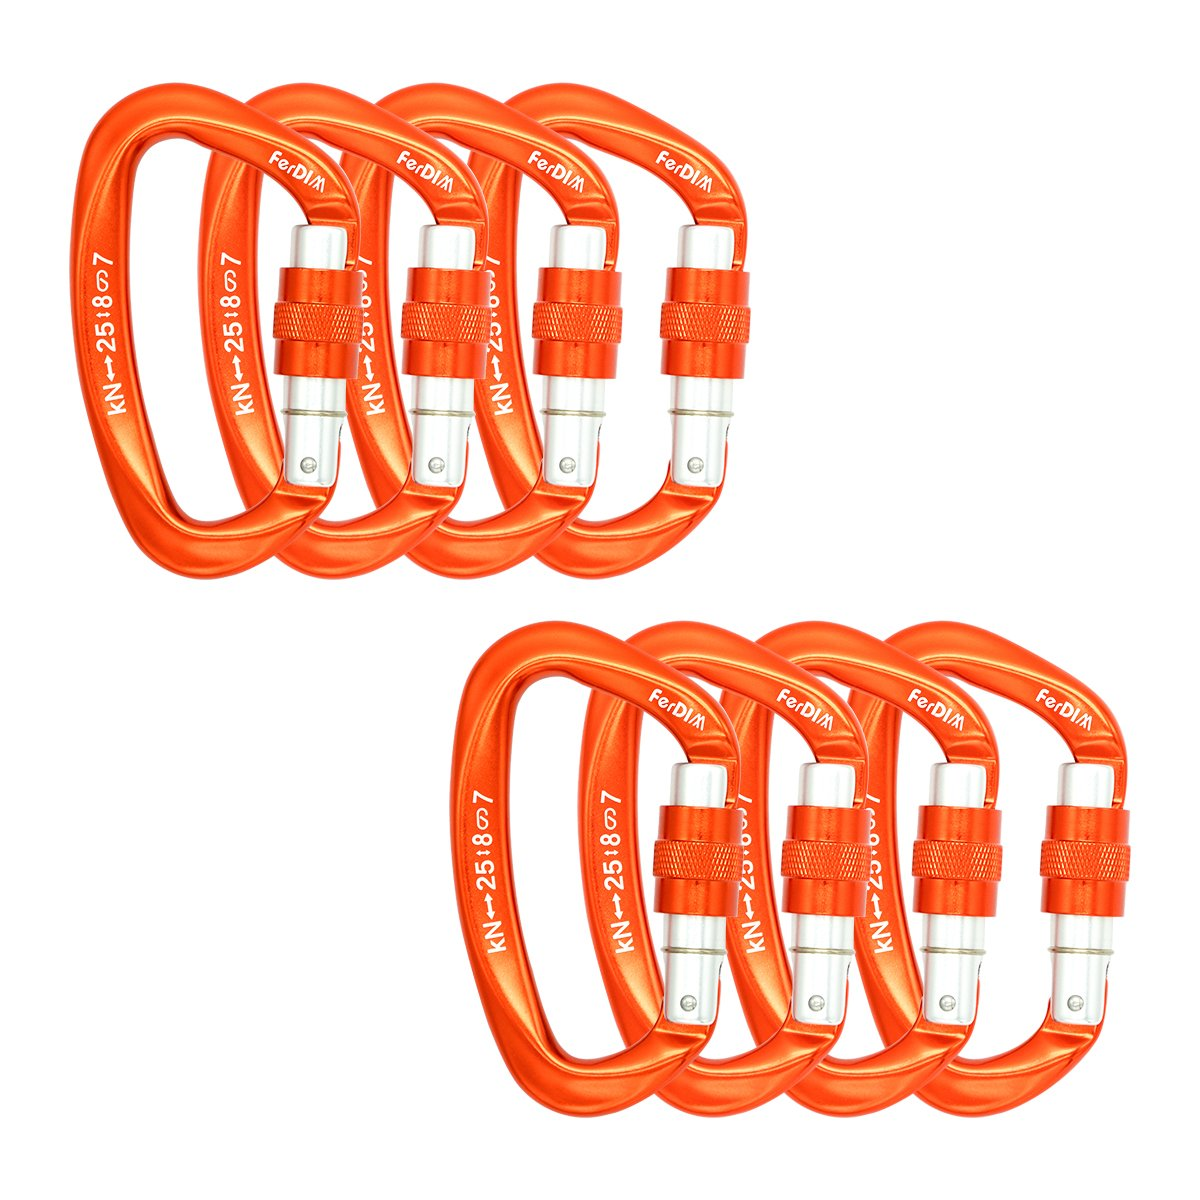 FerDIM 25KN Rock Climbing Carabiner, D-Shaped Hot-Forged Magnalium Locking Climbing Hook Holds 5511lbs with Screwgate Clip Climber Hiking Karabiner Outdoor Sport Tools CE Certified (Orange, 8/Pack)